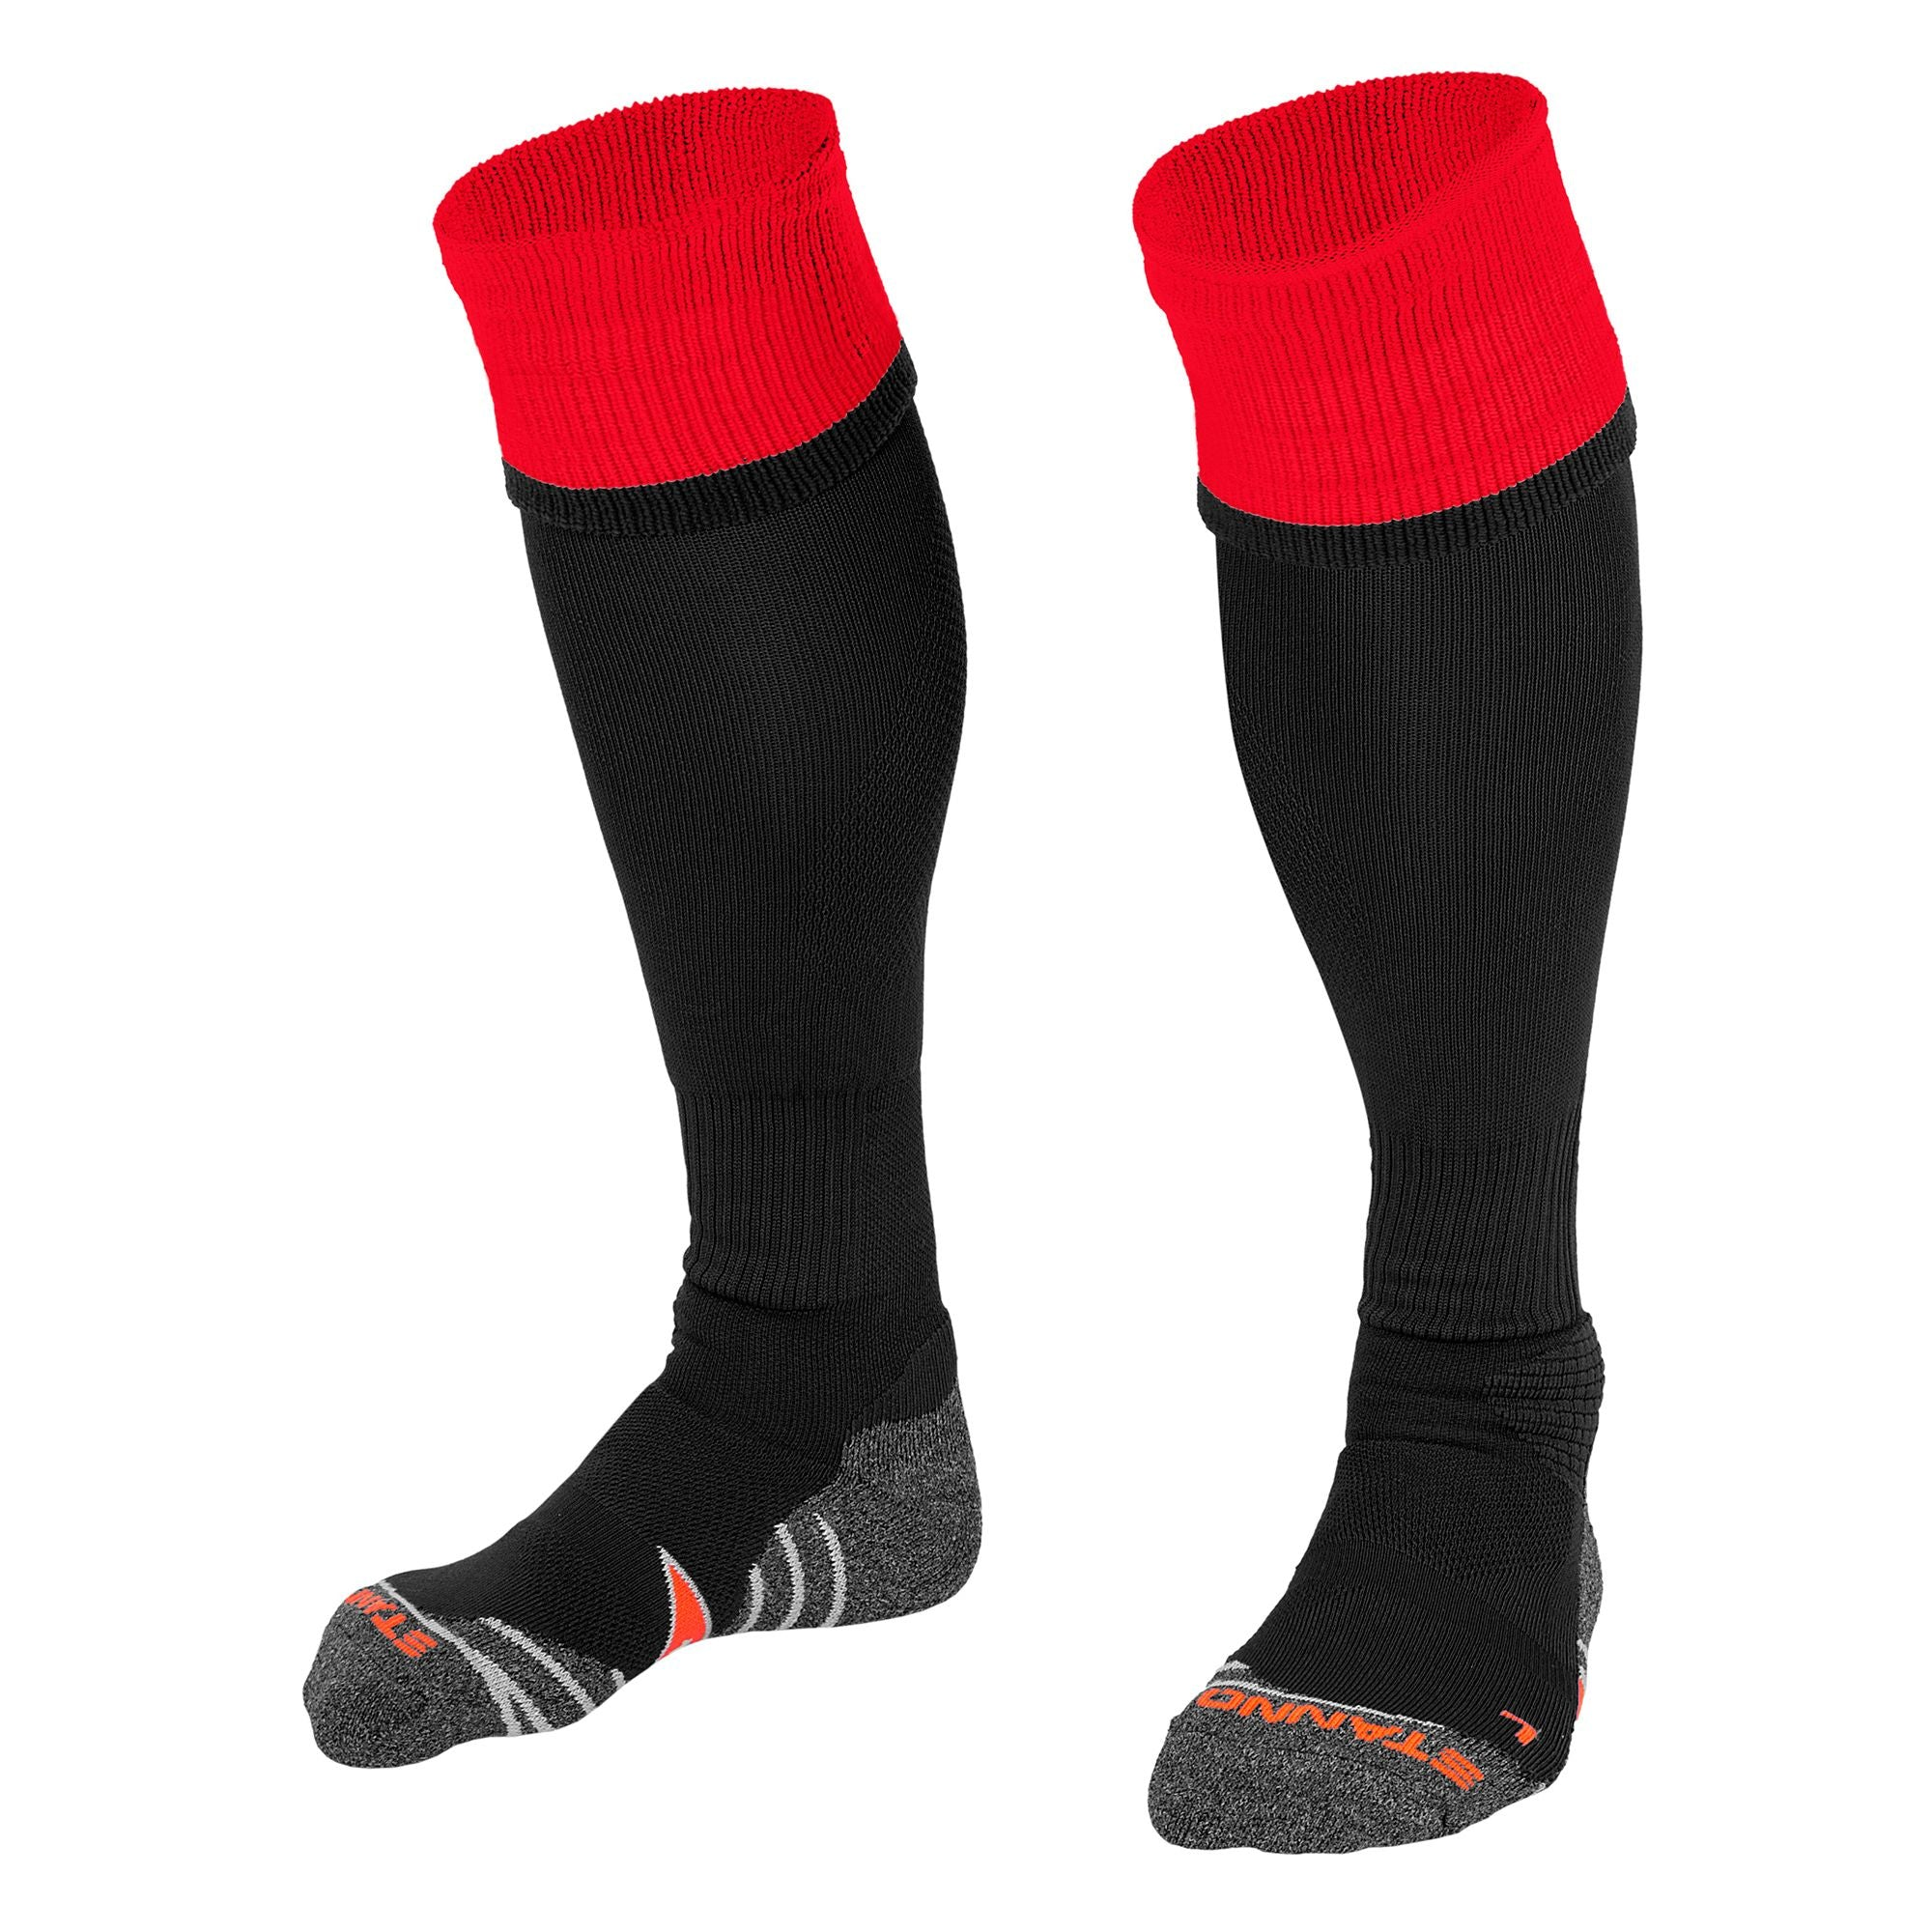 Stanno Combi Socks in black with red contrast tops